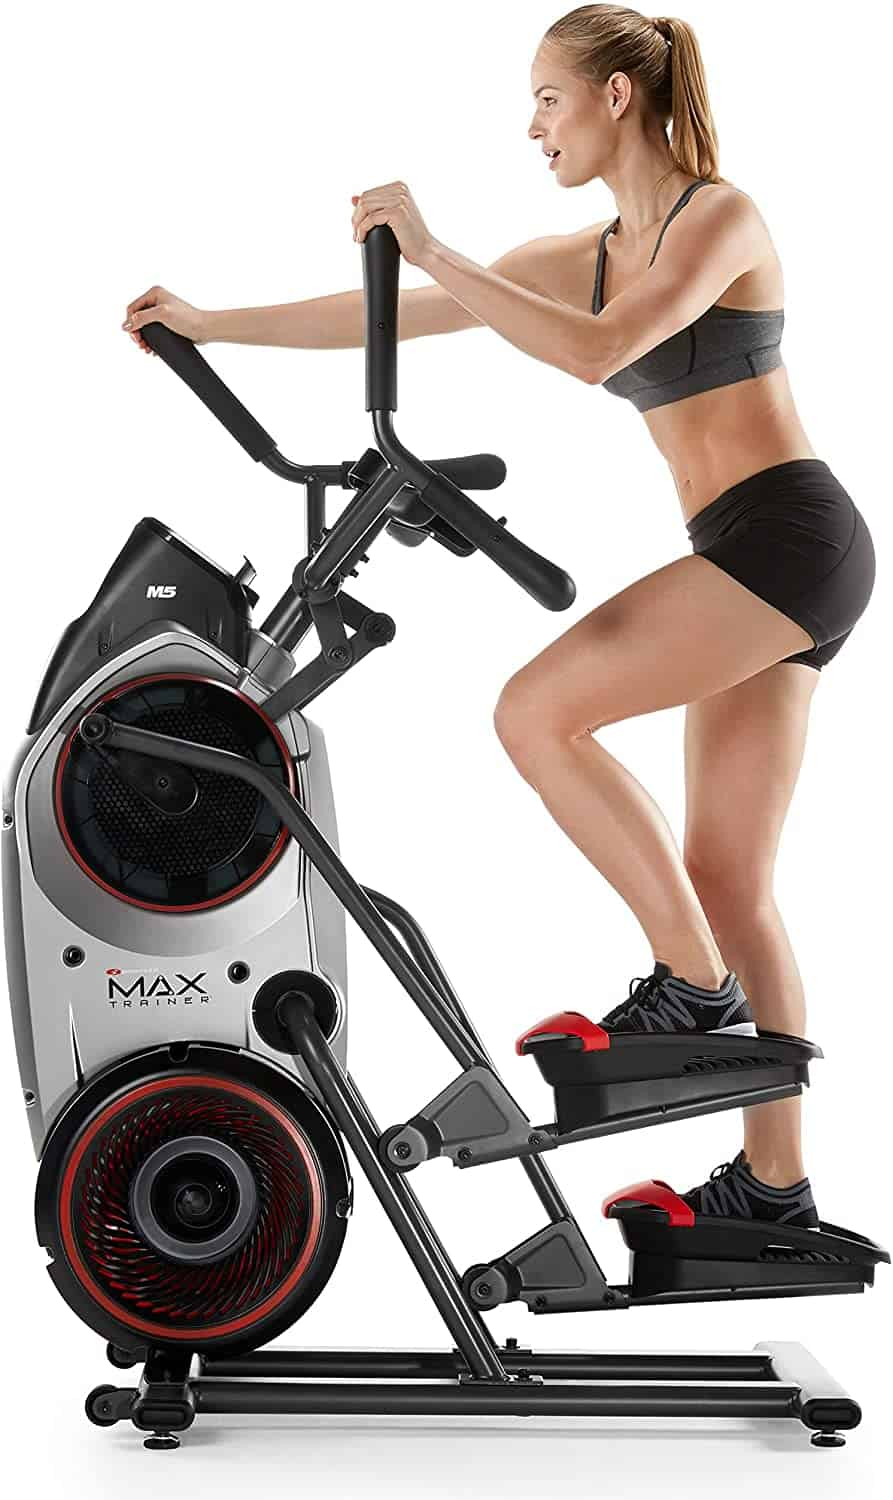 A lady exercises with the Bowflex Max Trainer M5